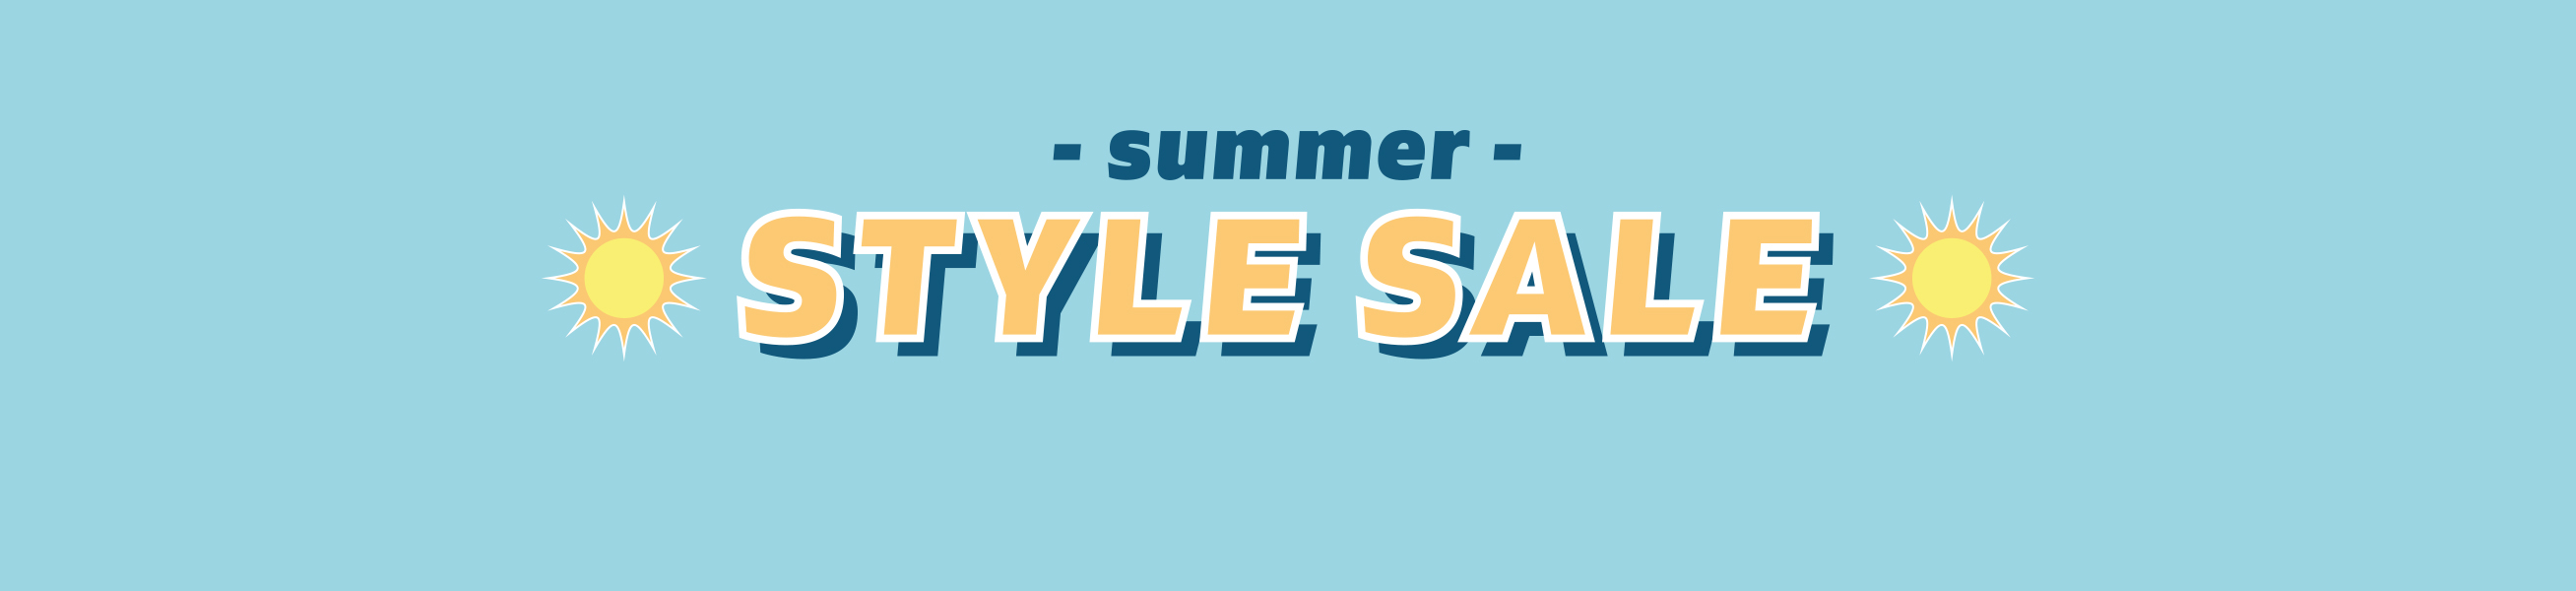 Summer Style Sale